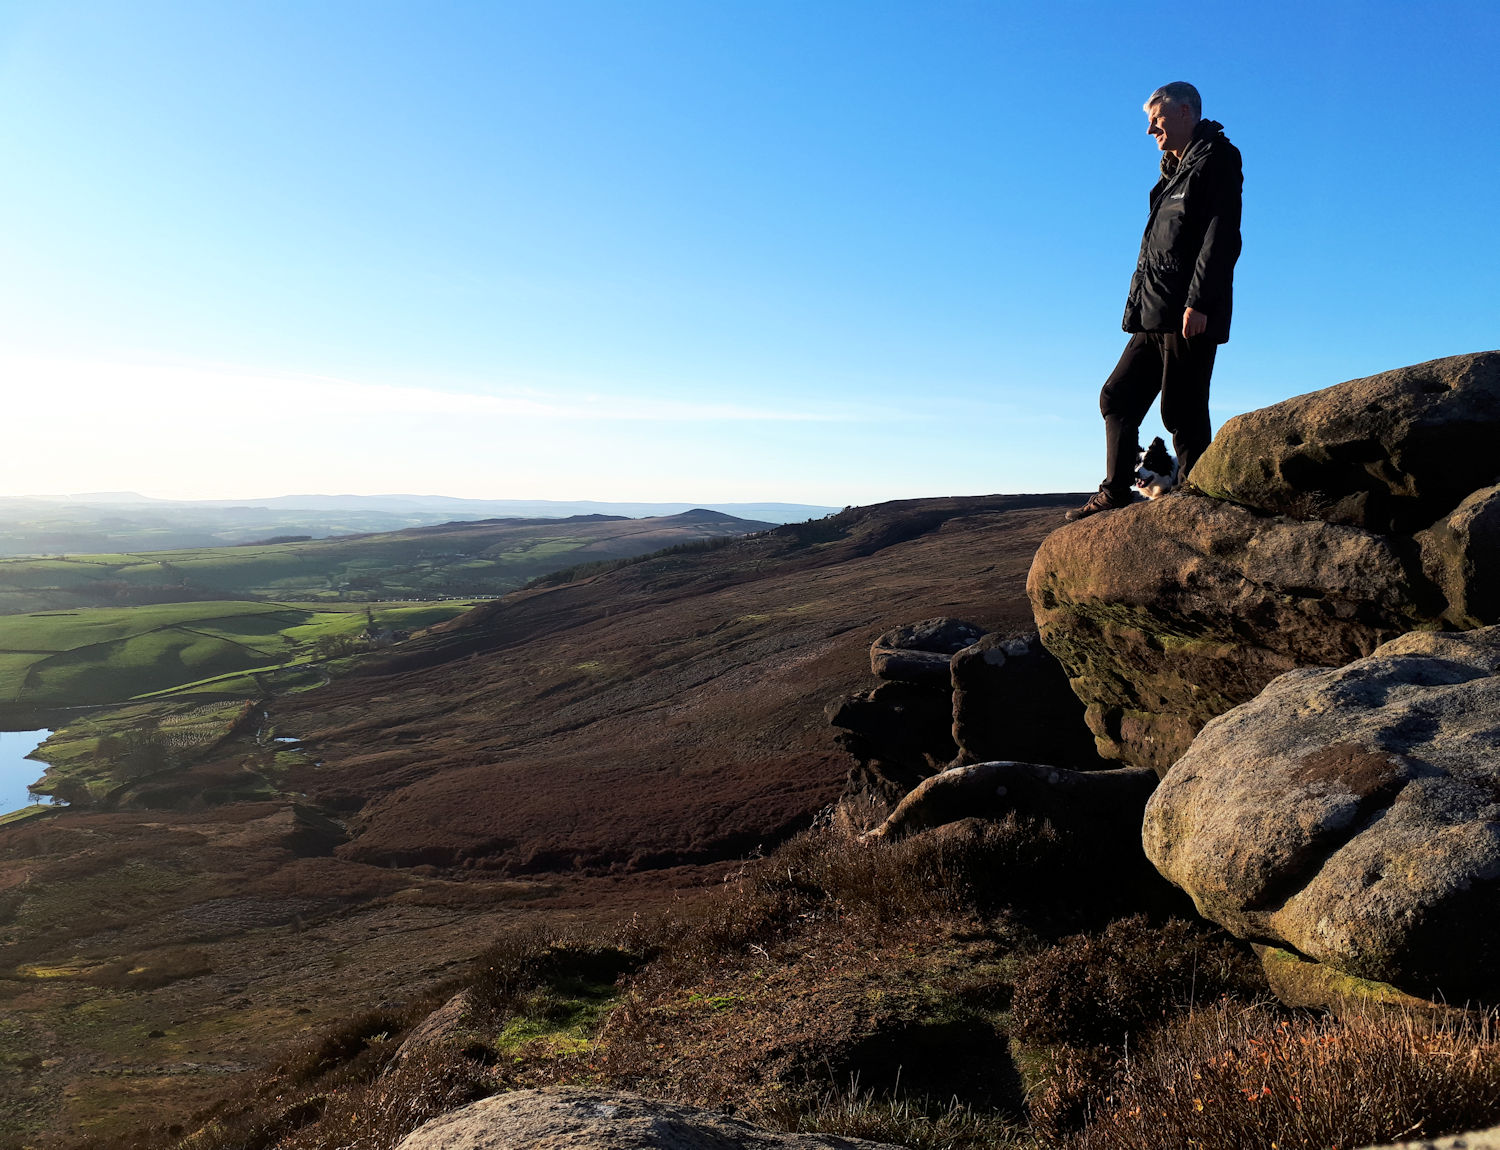 Views from Embsay Crag